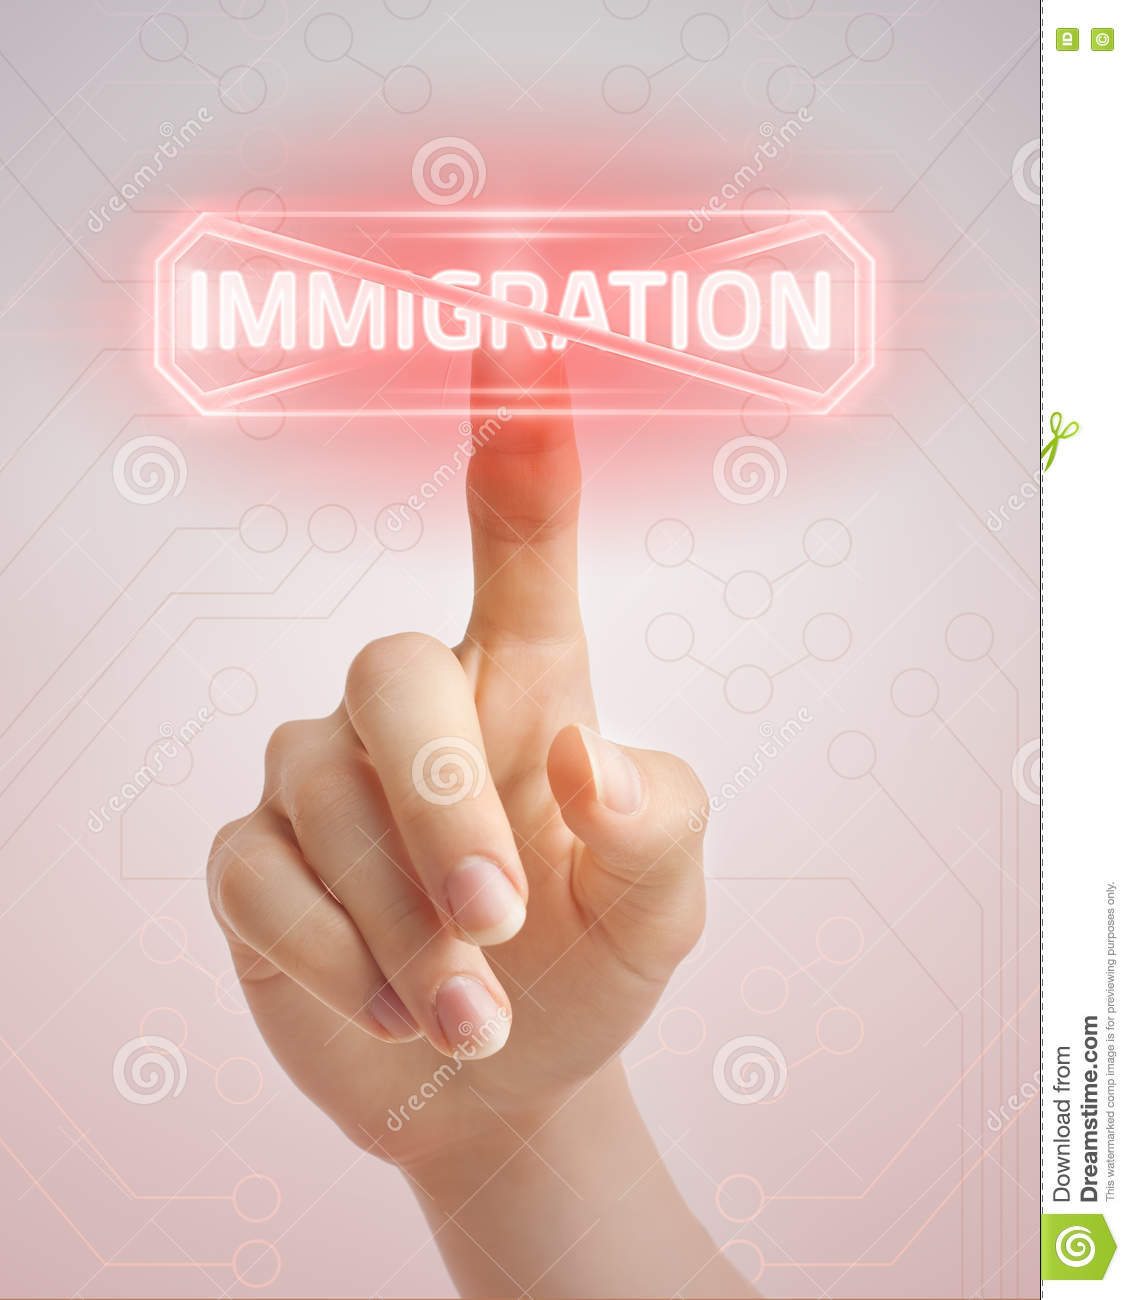 Stop immigration